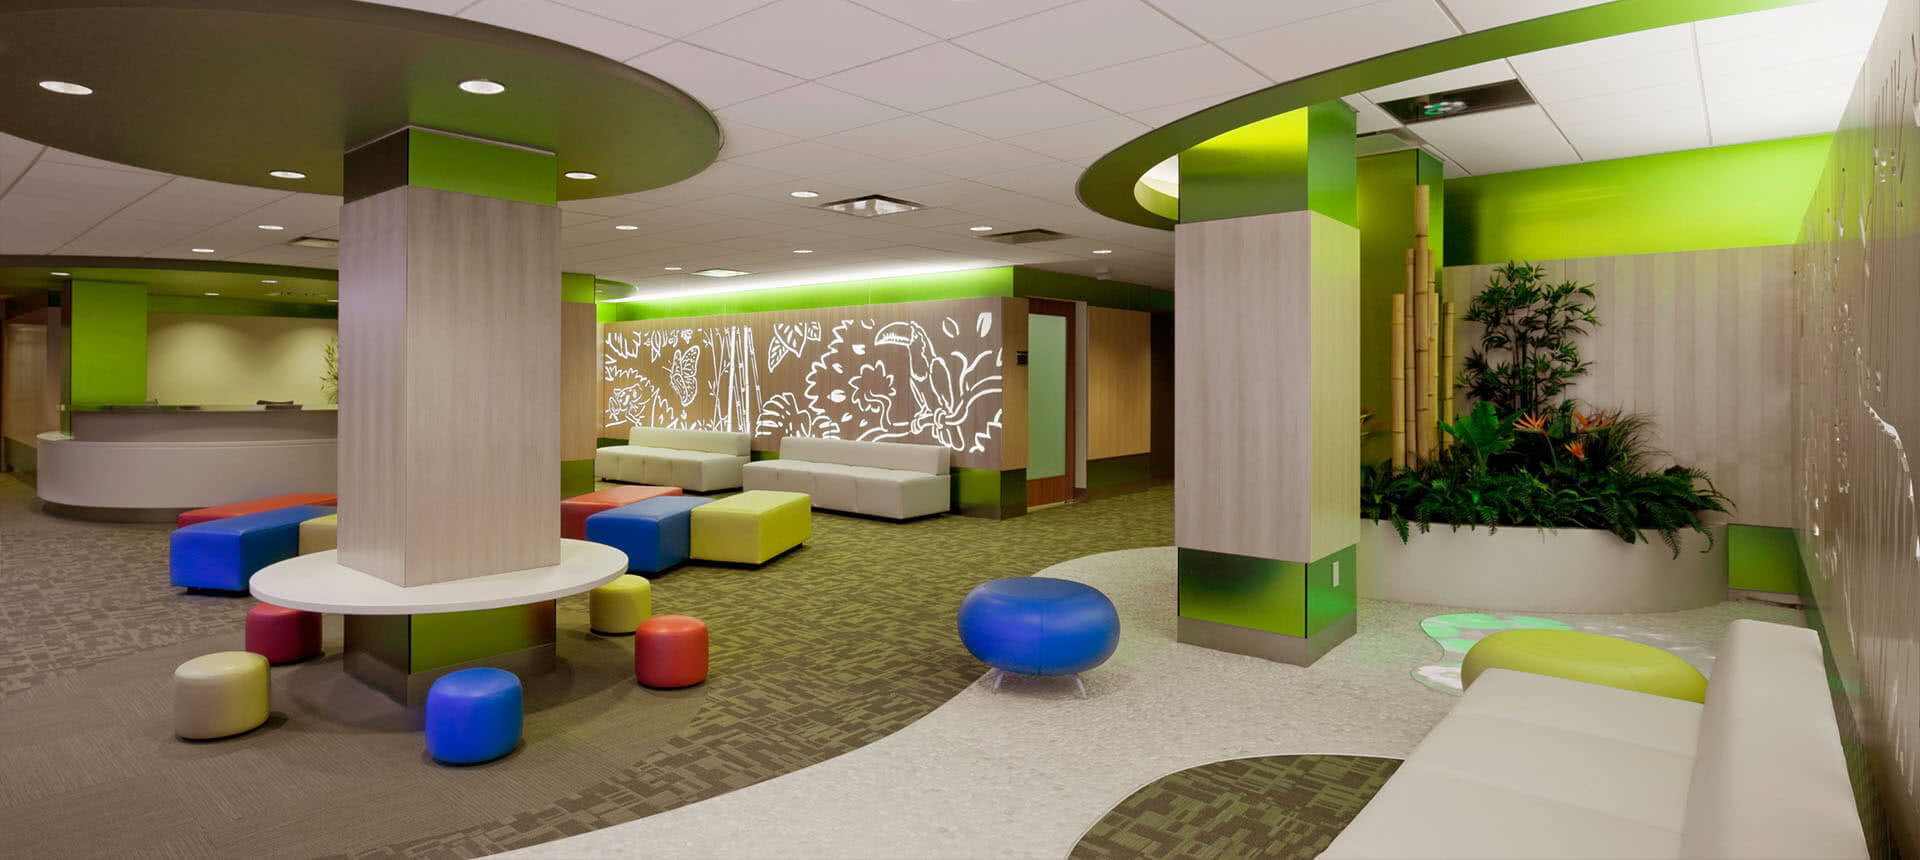 Healthcare Interior Architecture Design 2